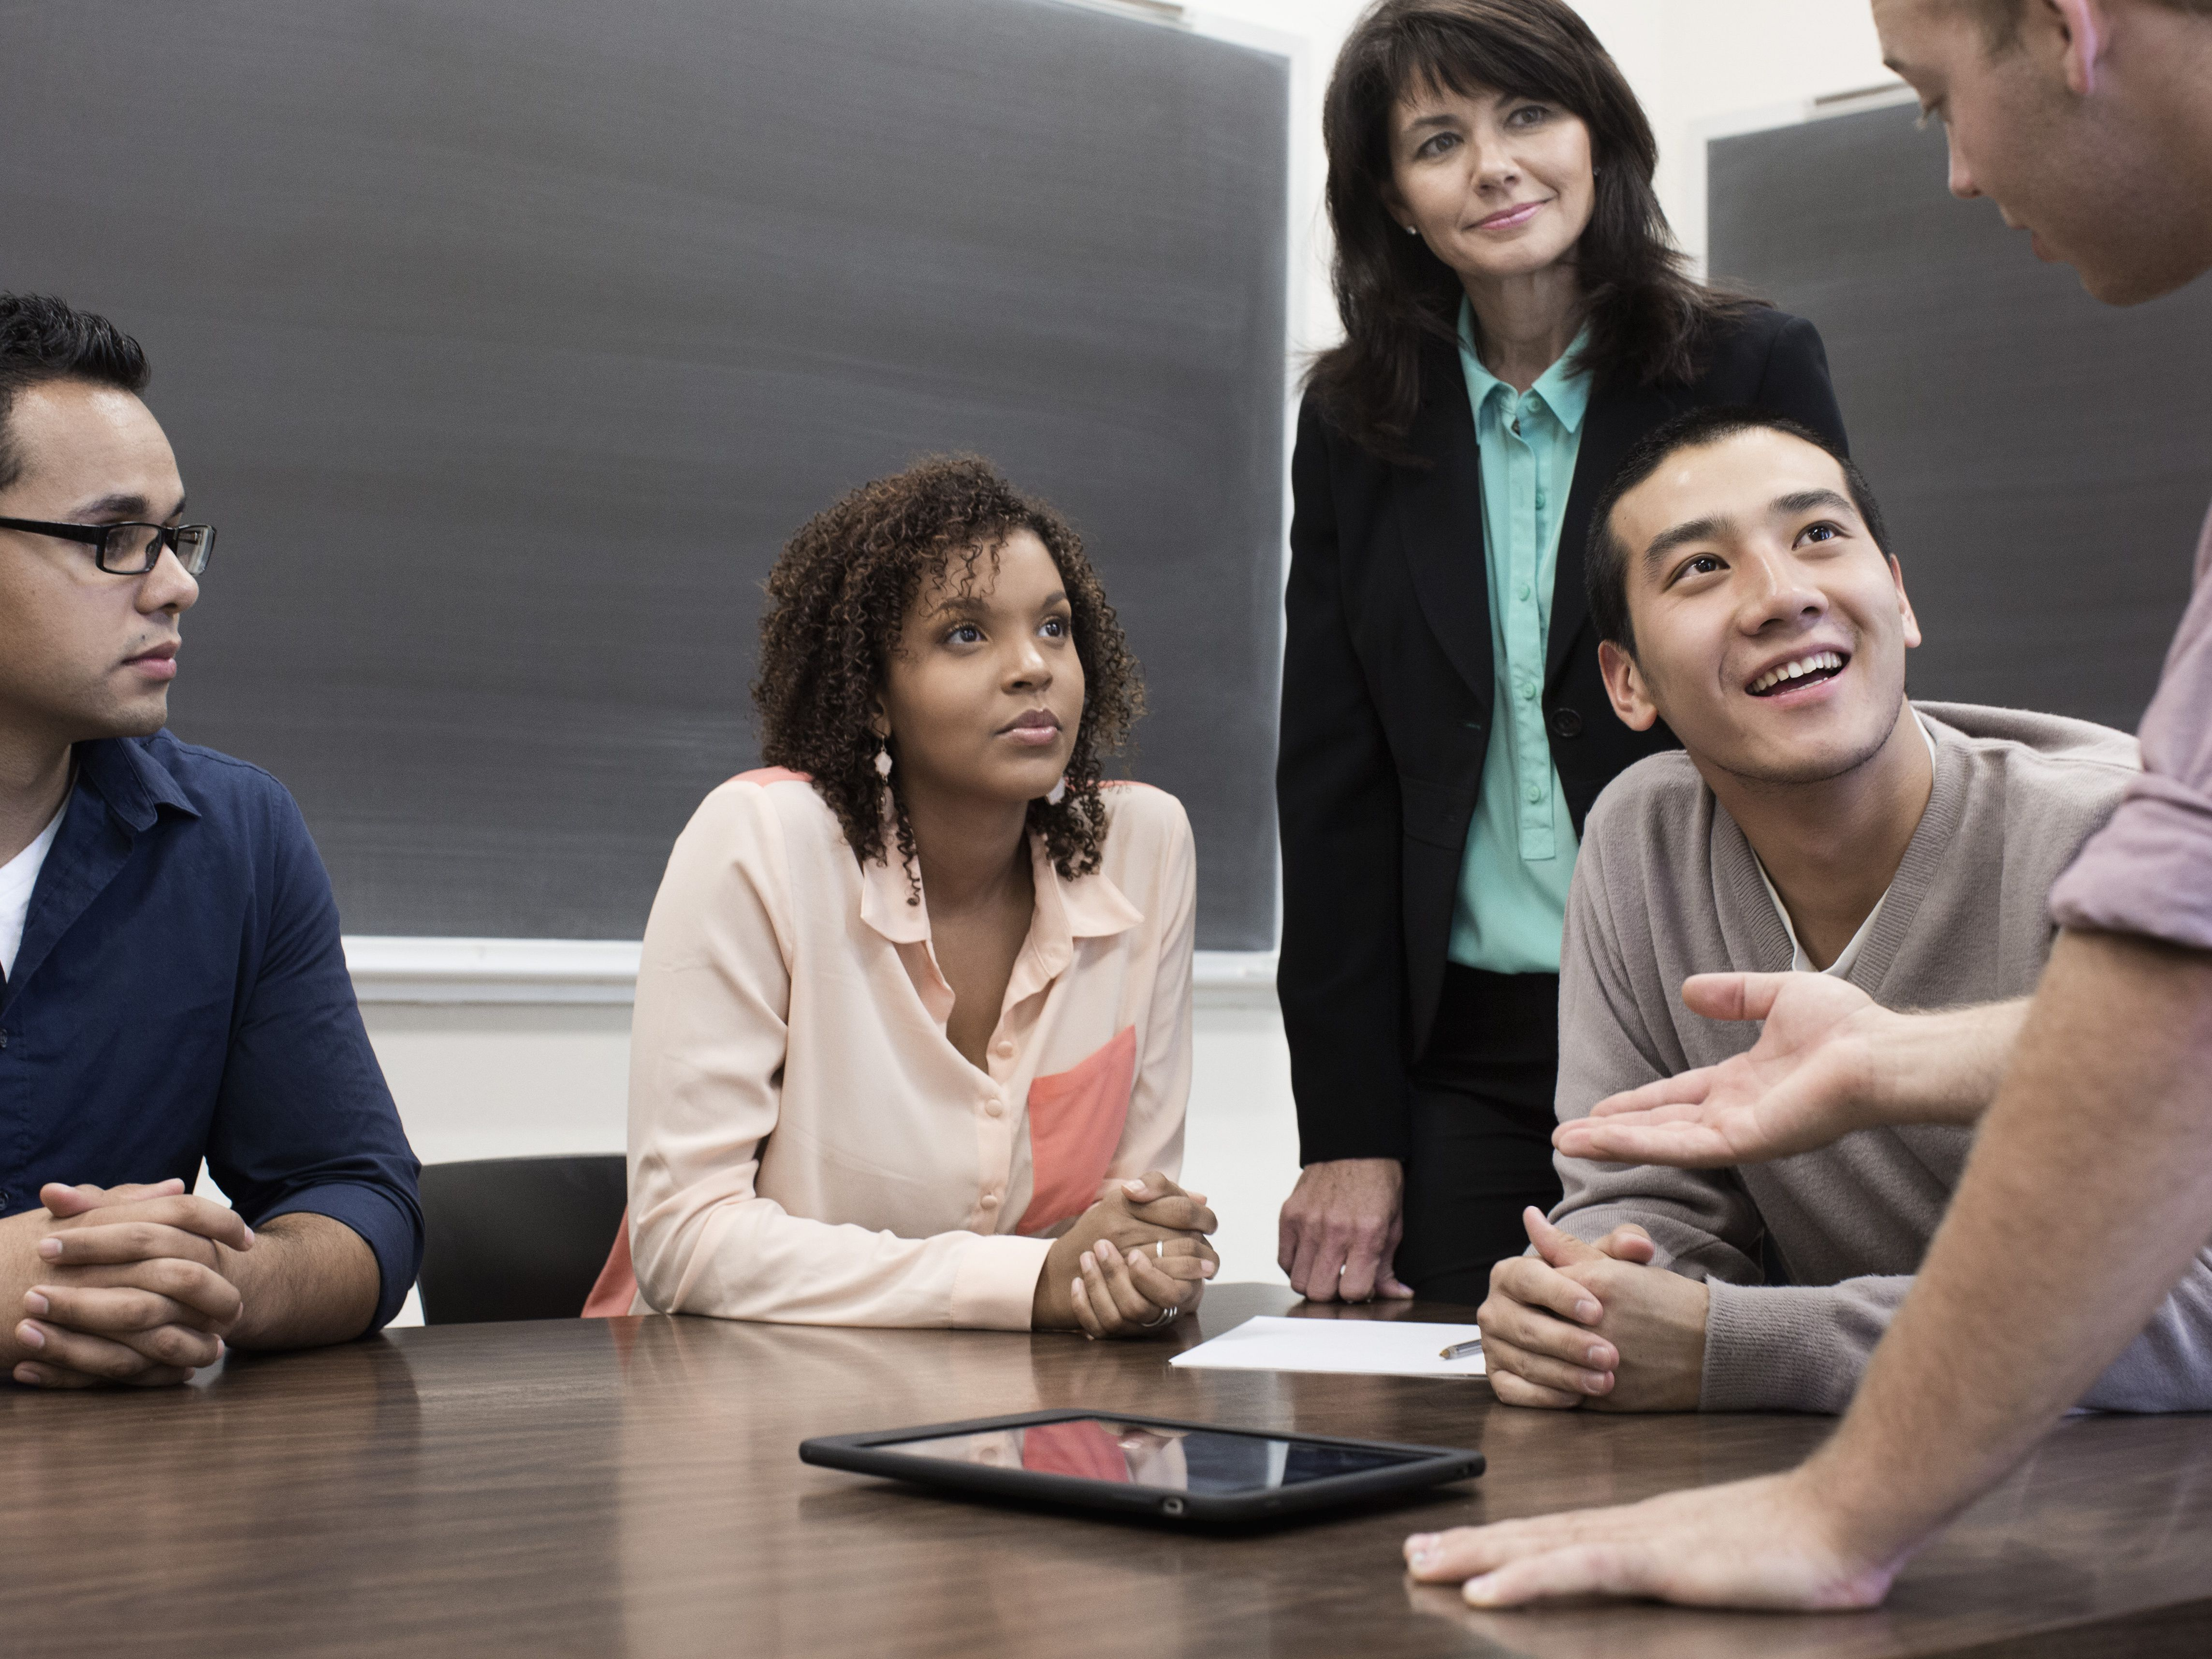 Top 10 Business Schools for Job Placement